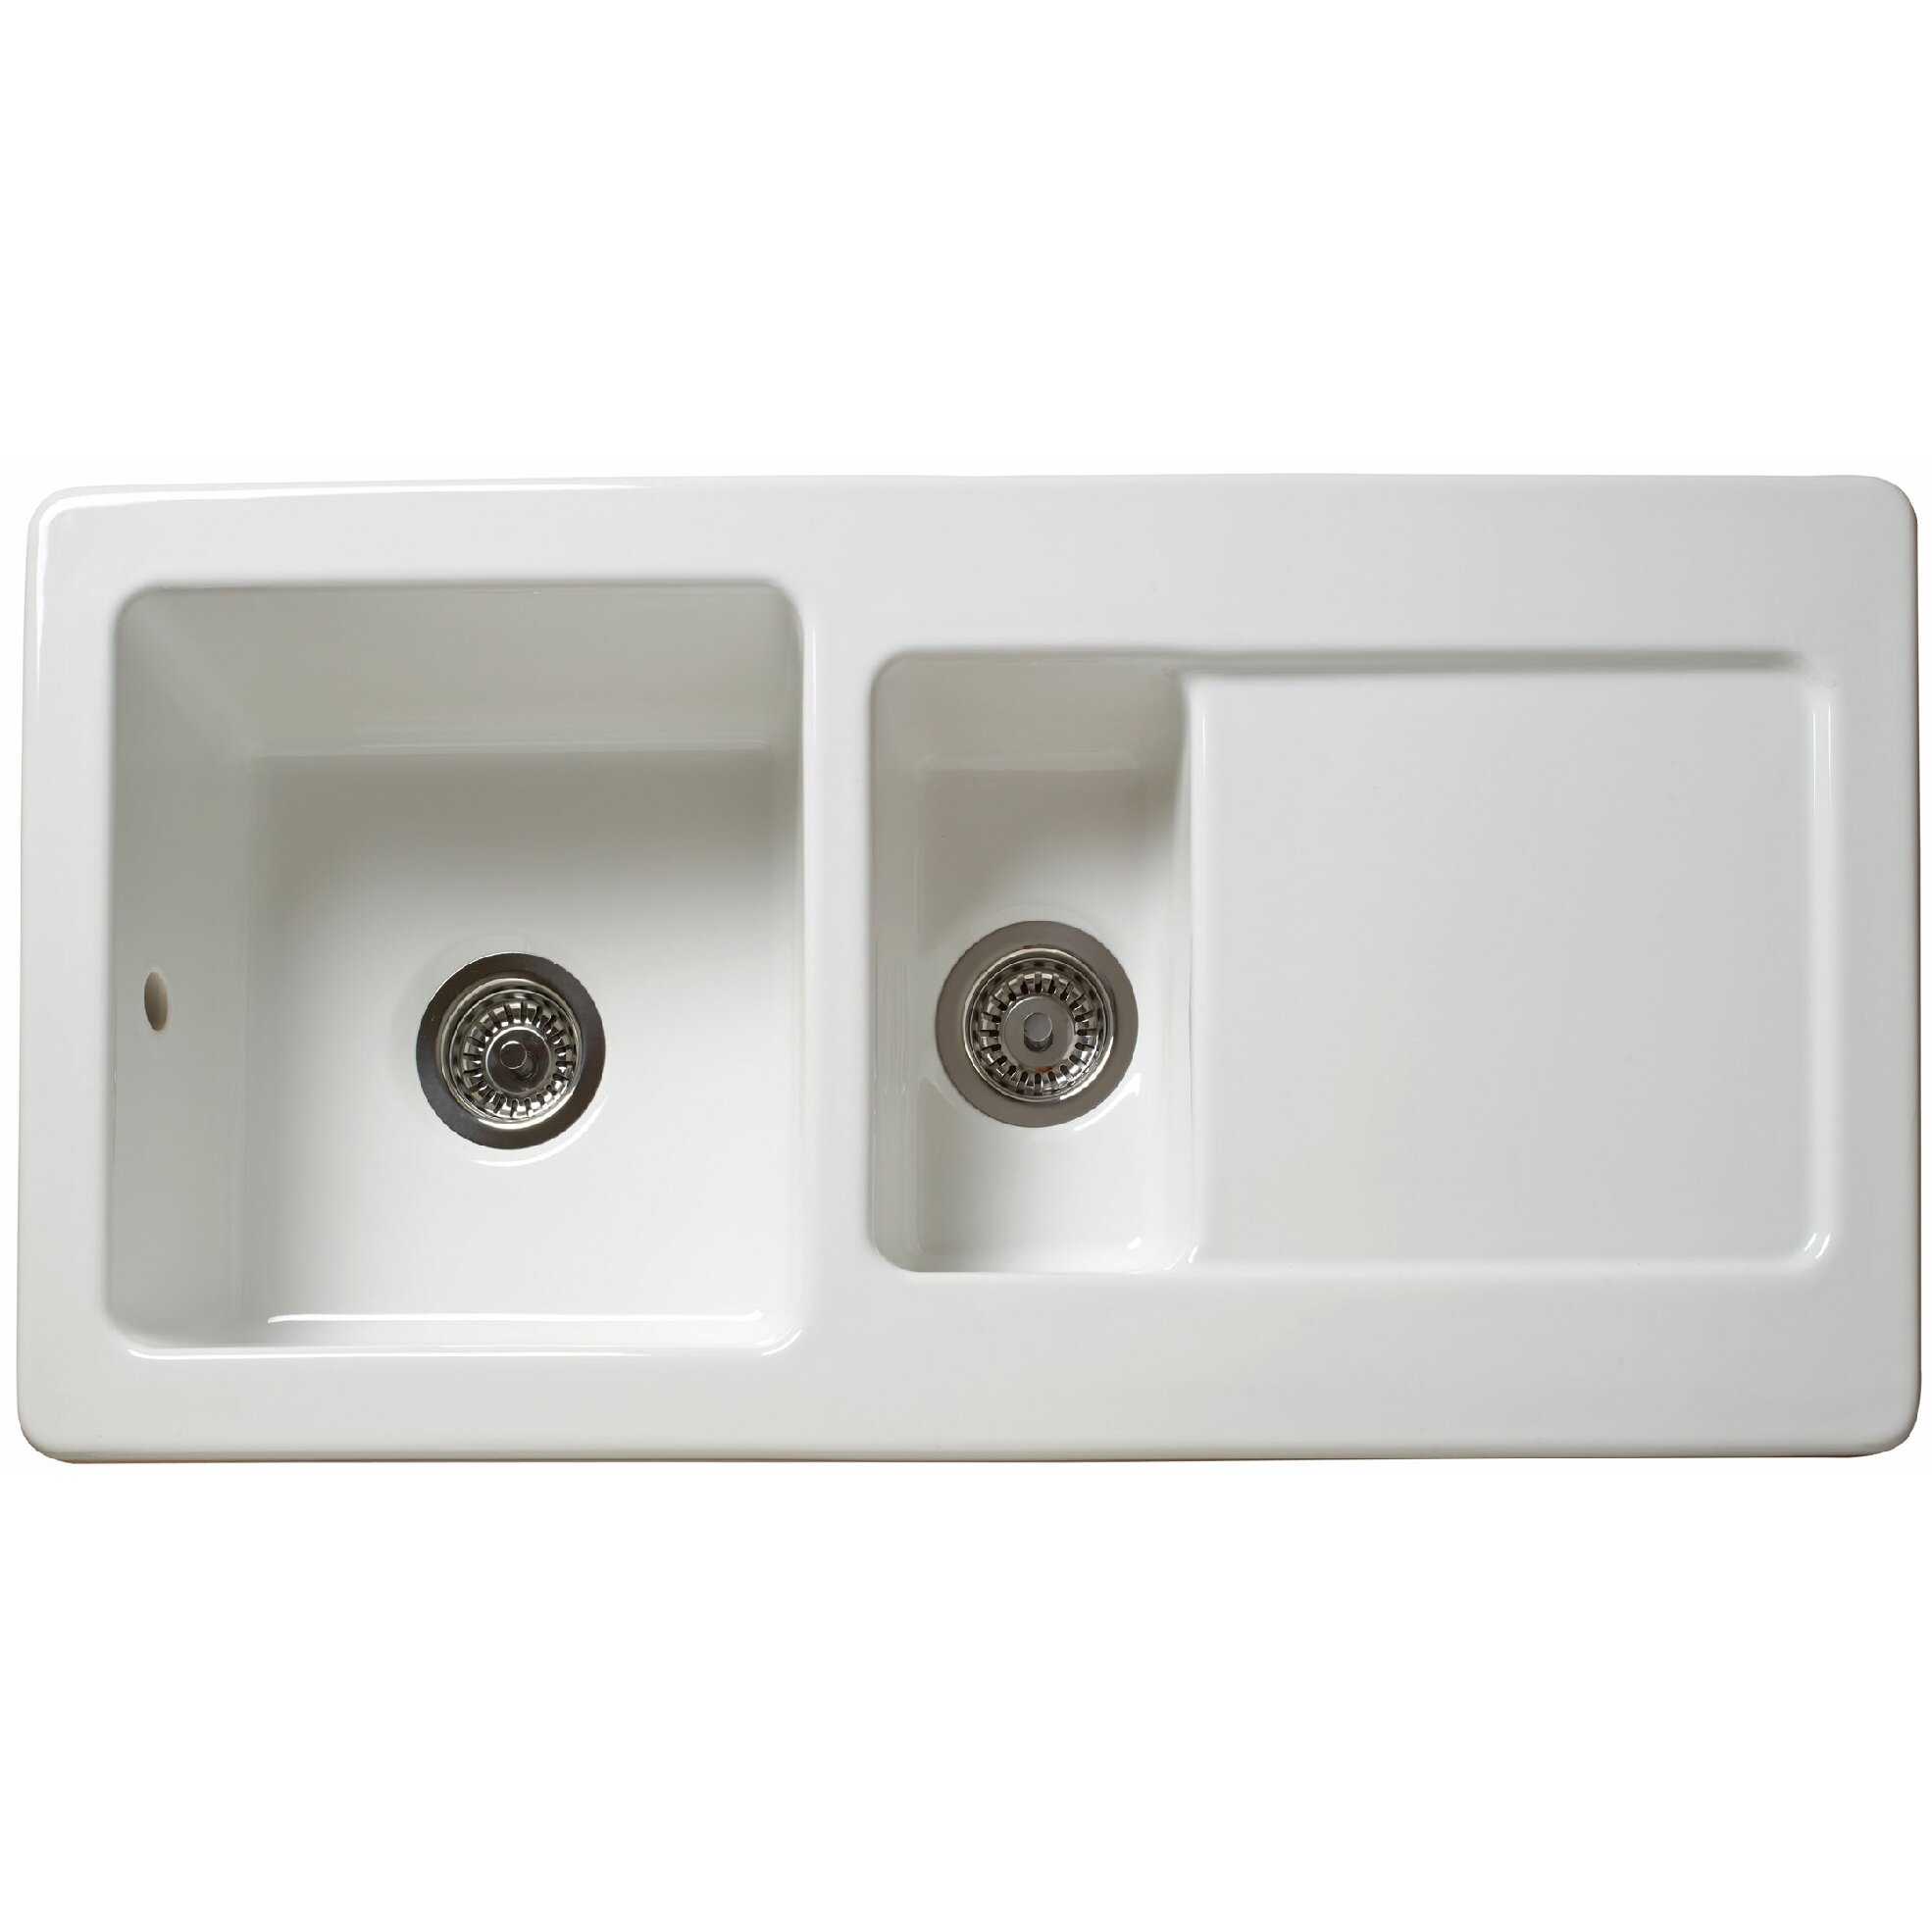 50cm inset kitchen sink with waste outlet reviews